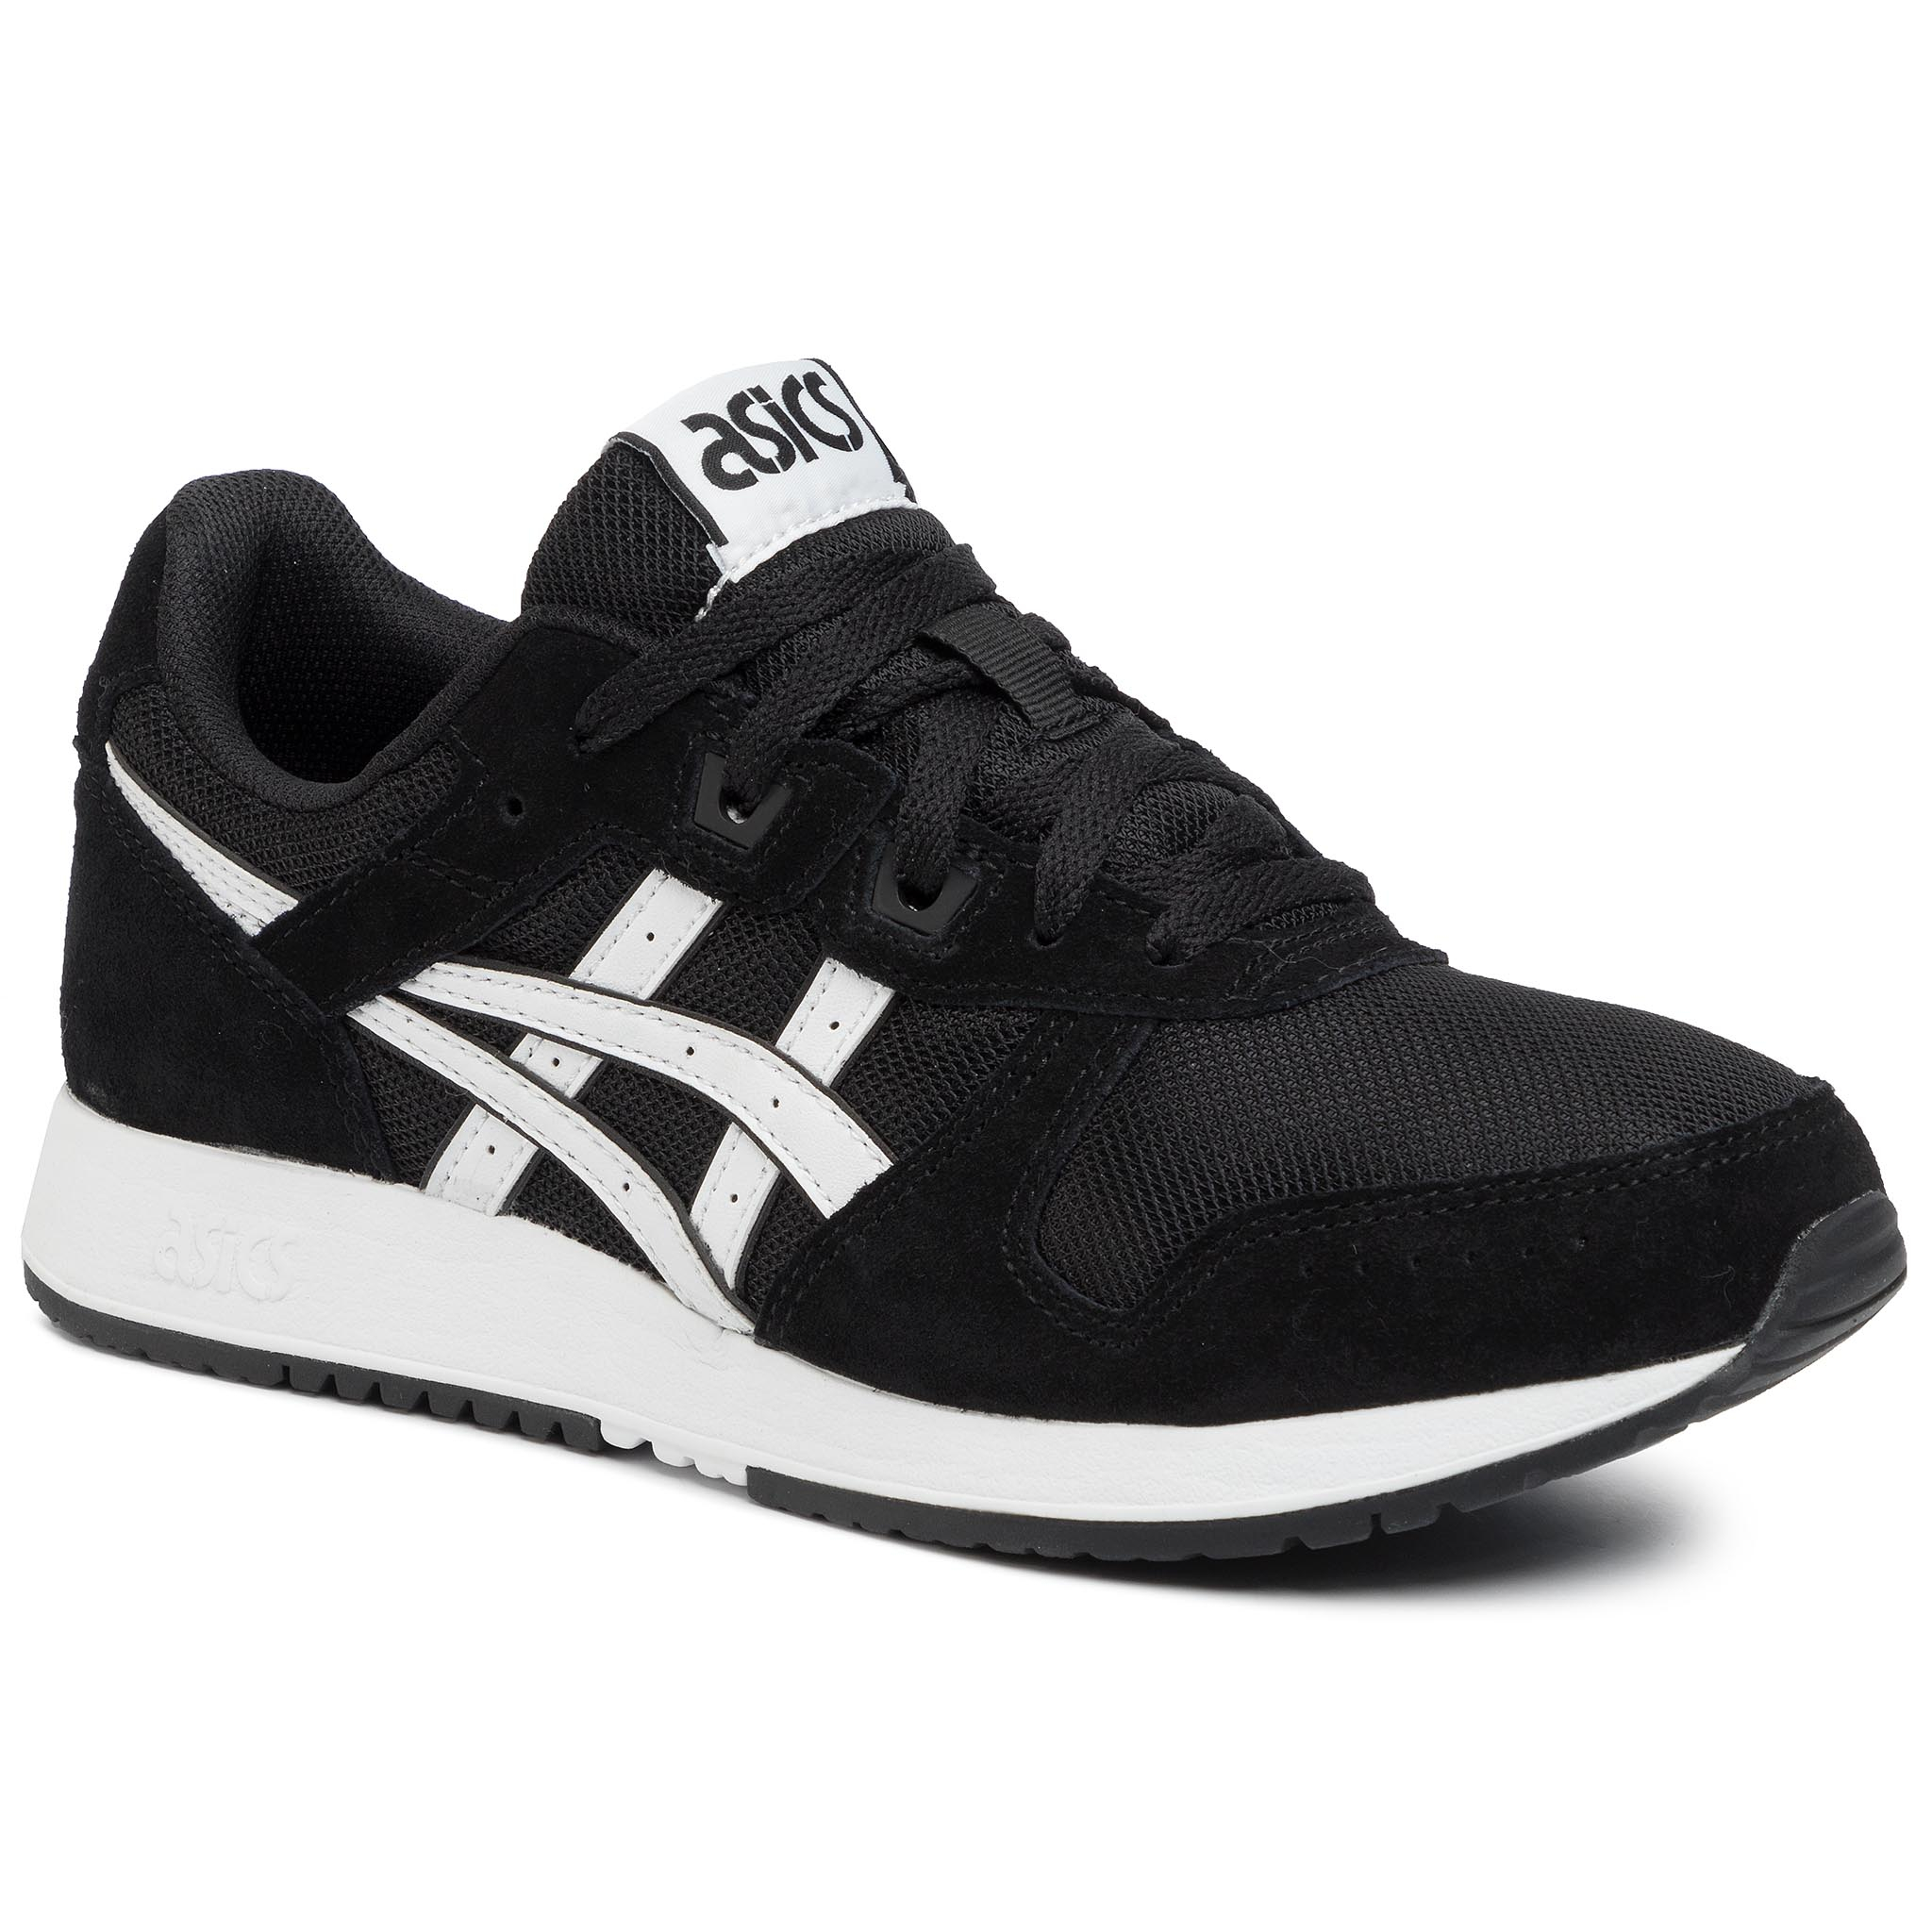 Sneakers ASICS - Lyte Classic 1191A297 Black/White 001